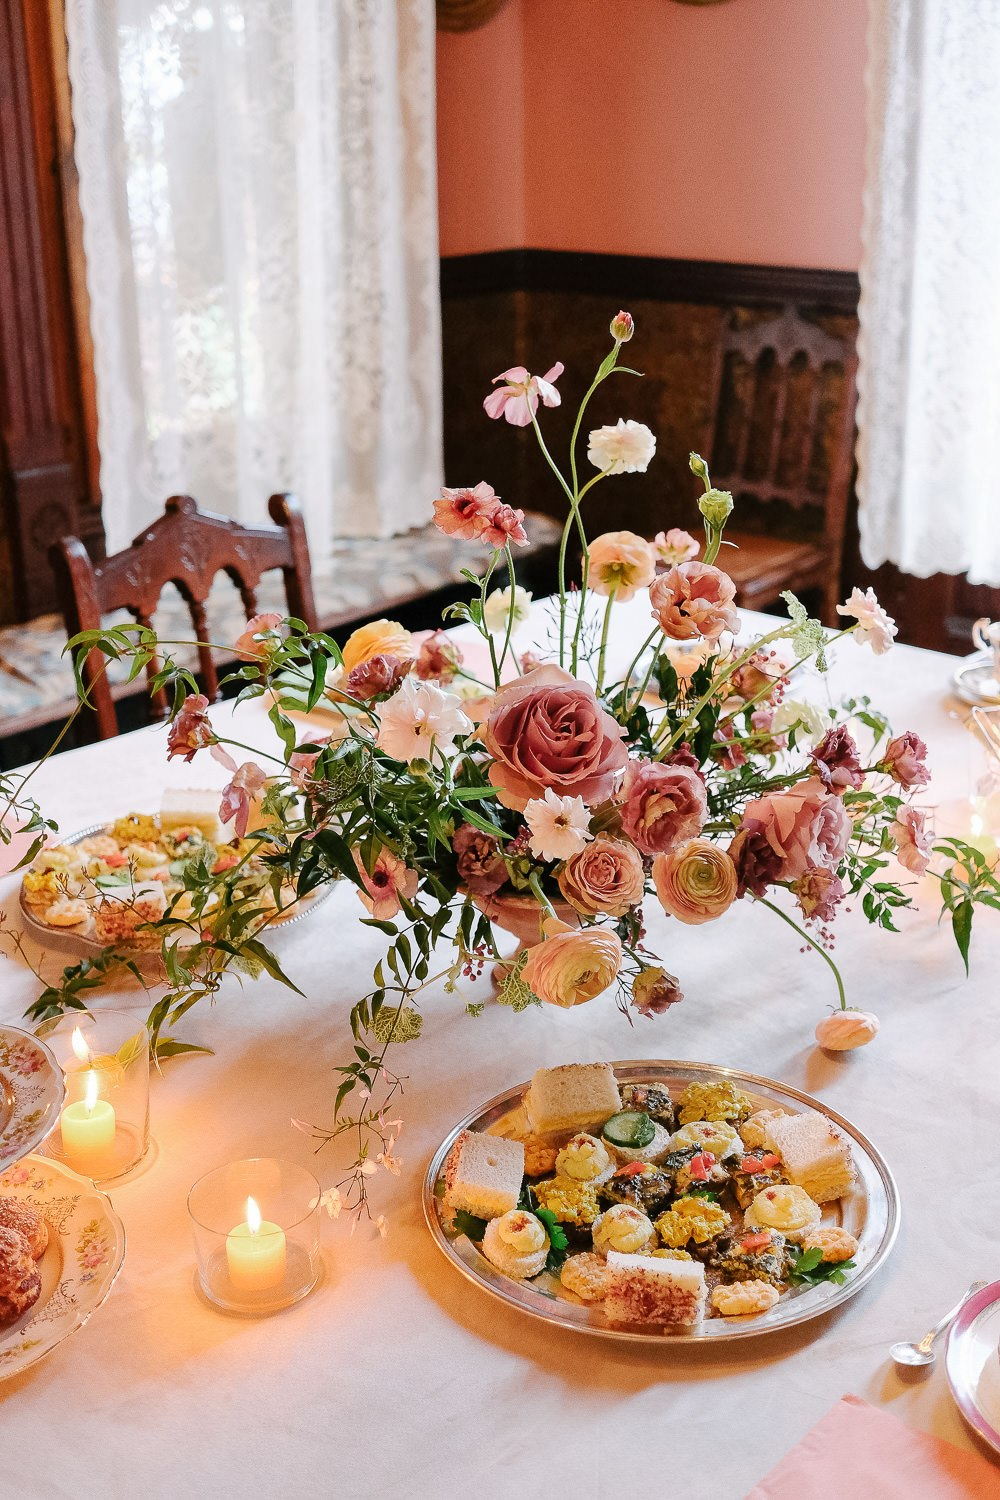 bridal tea party with small bites and textured blooms